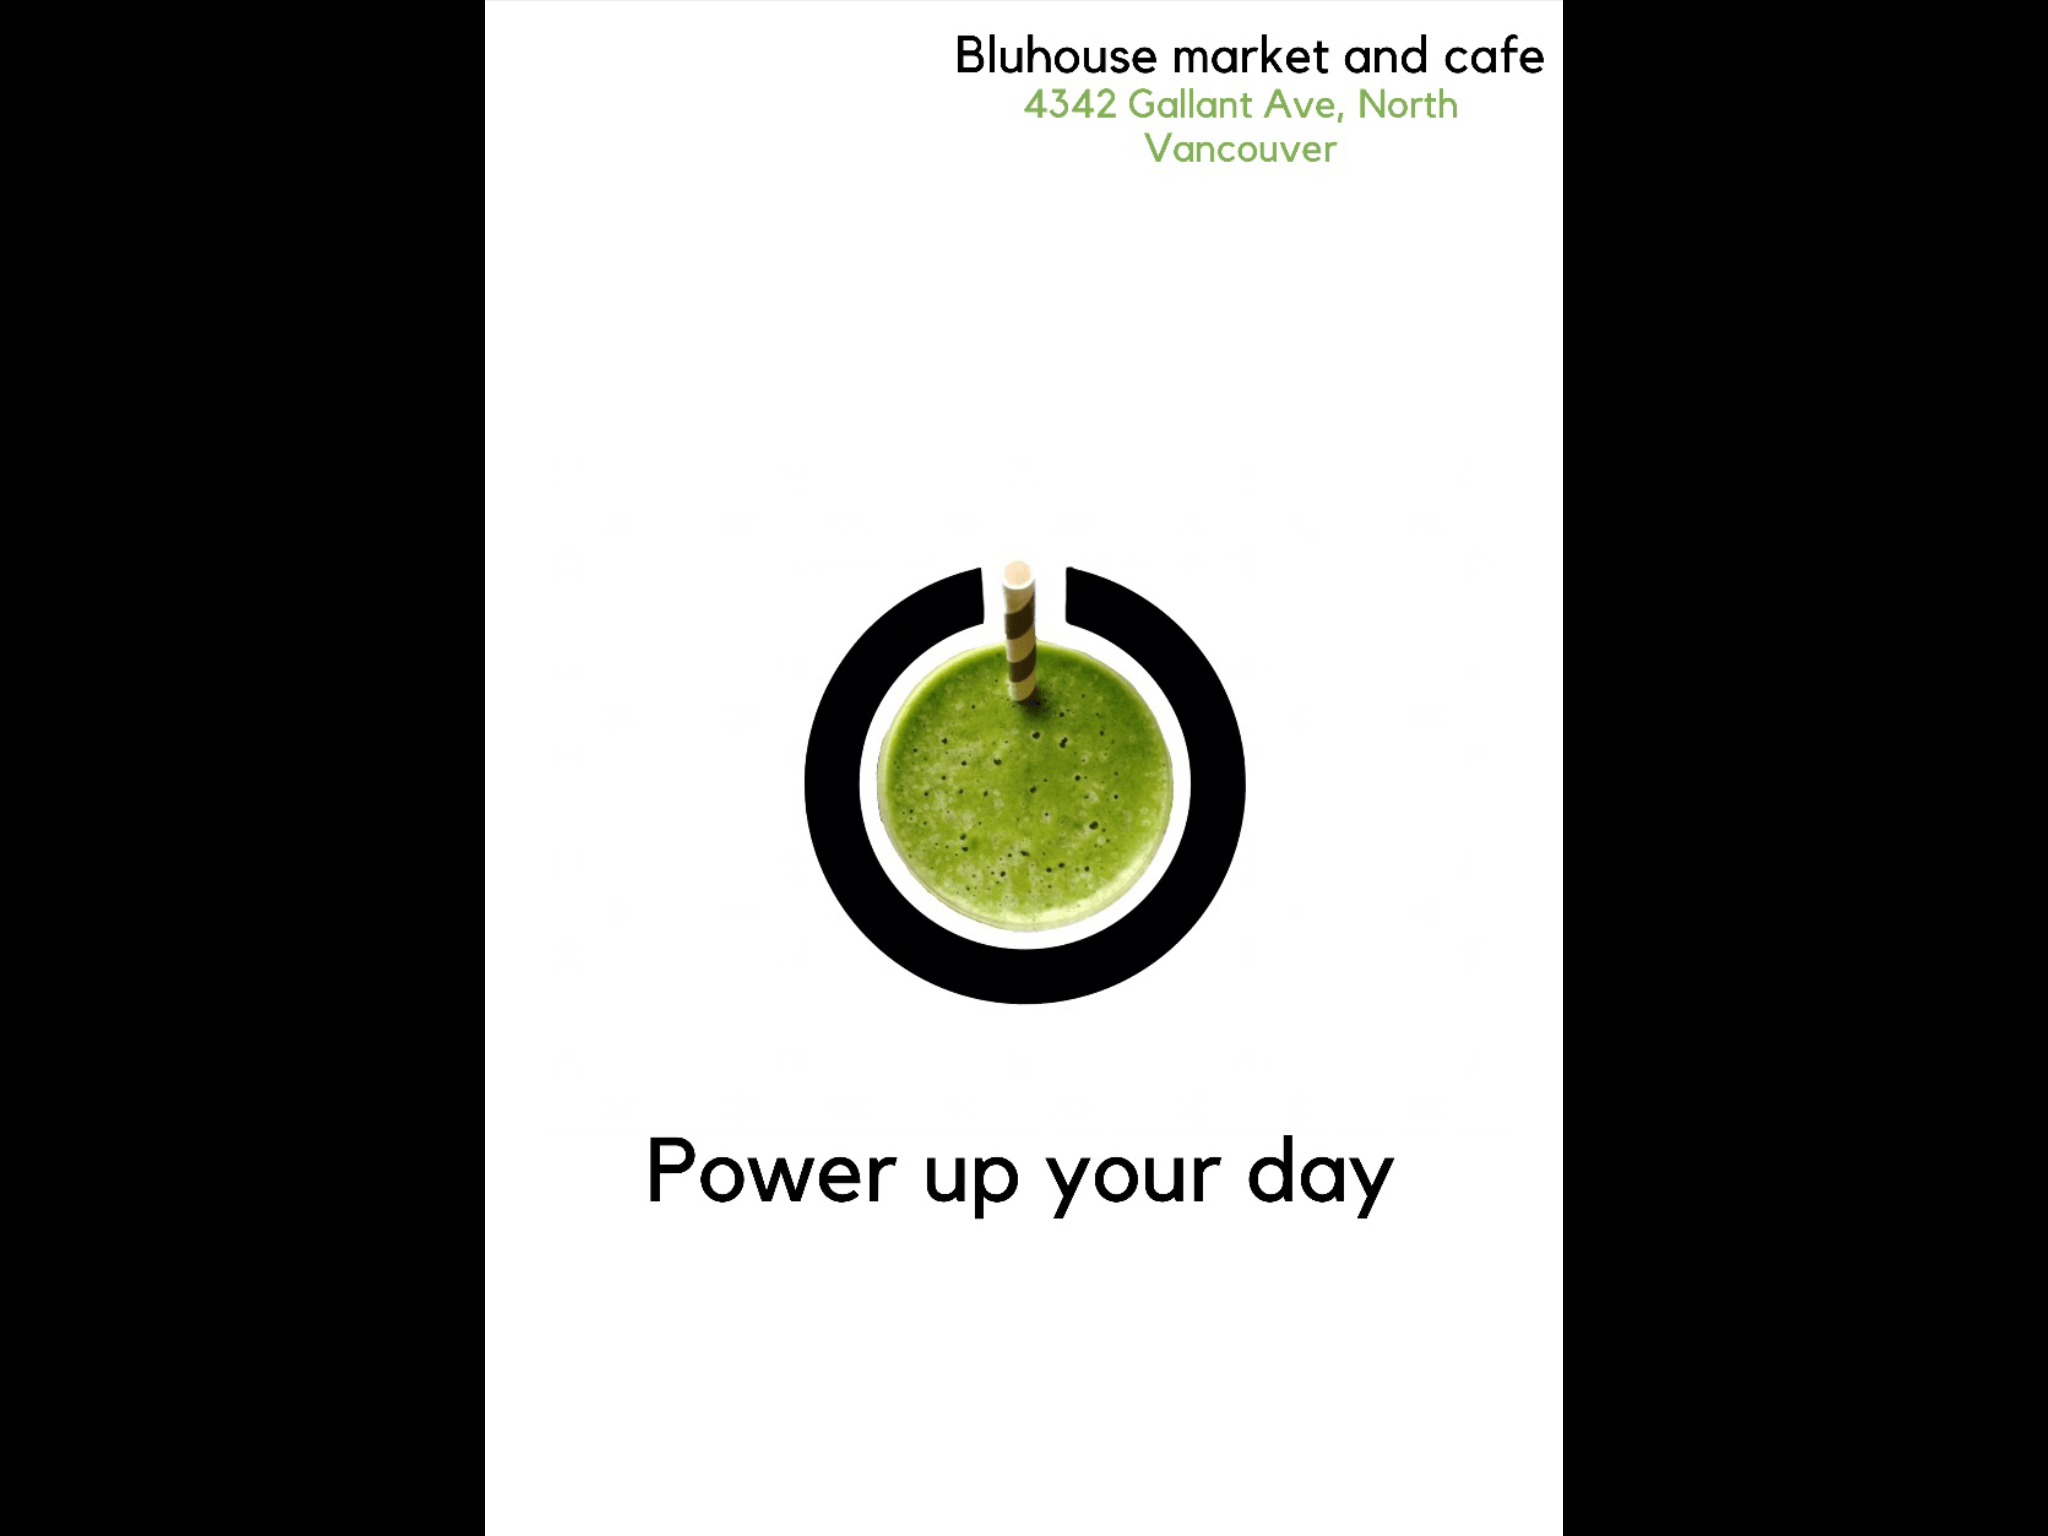 Power up your day ad for bluhouse